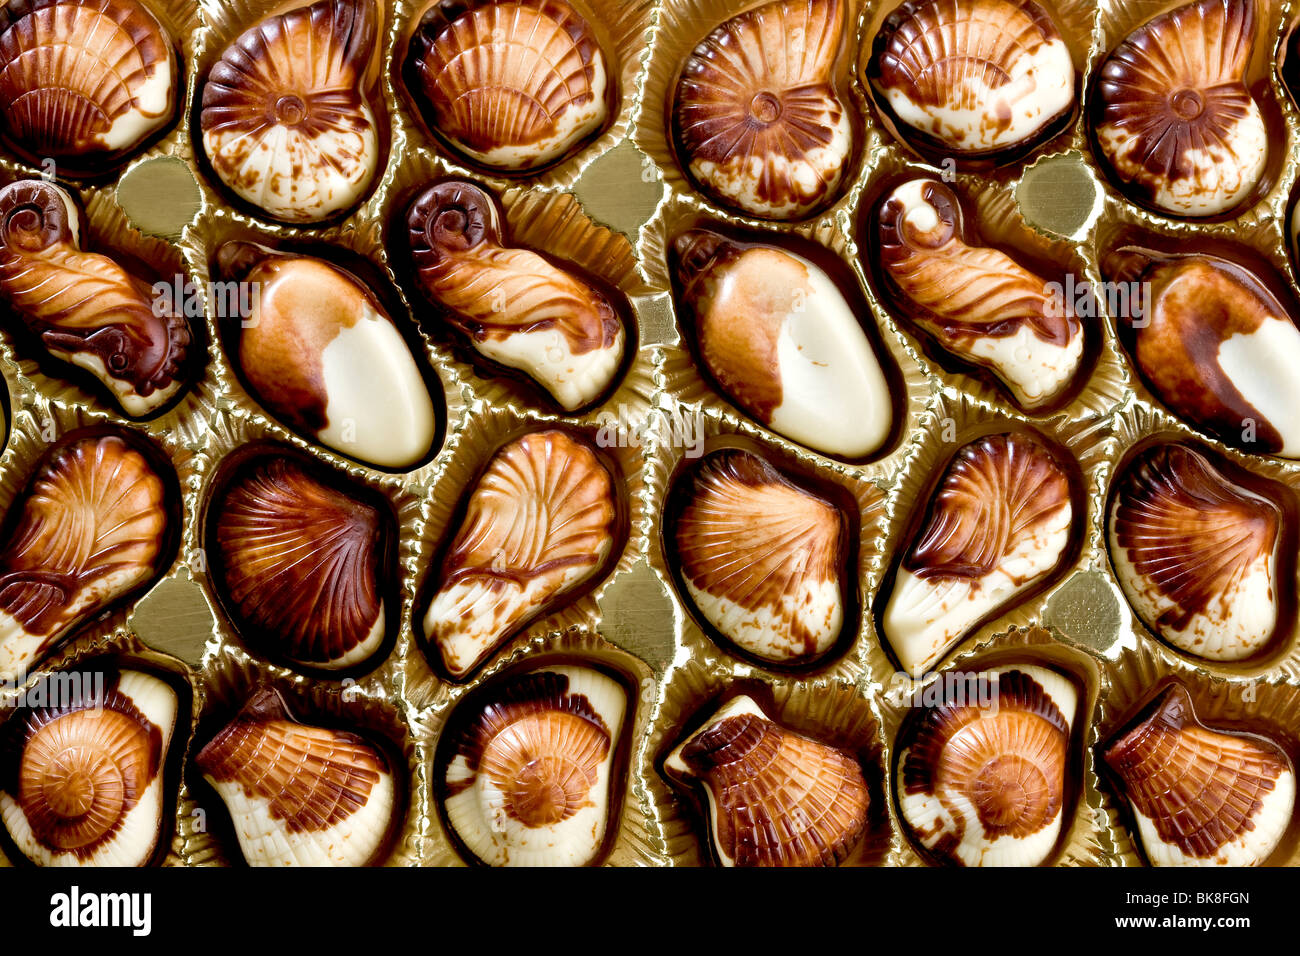 Belgian Chocolate Stock Photos & Belgian Chocolate Stock Images ...